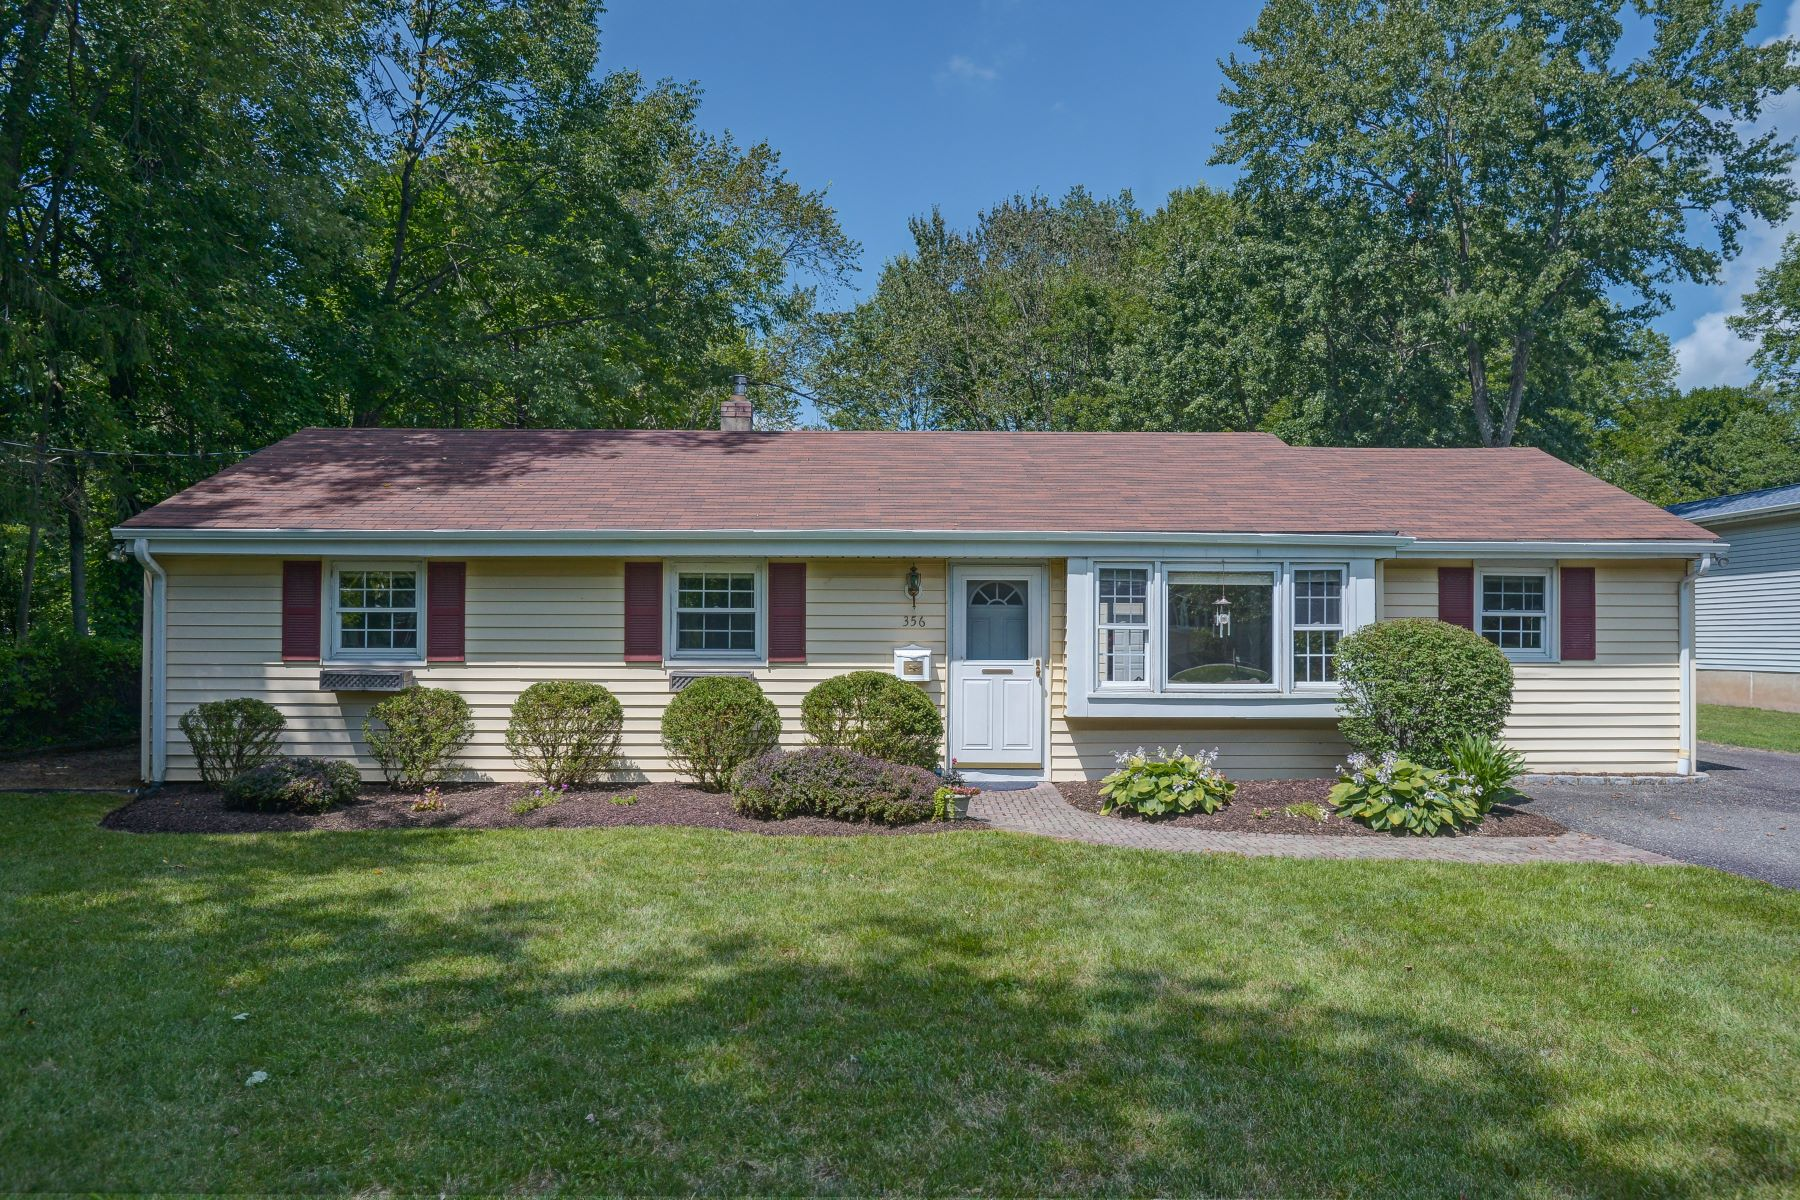 Single Family Homes for Sale at One Floor Living! 356 Mercer Street, Long Hill Township, New Jersey 07980 United States